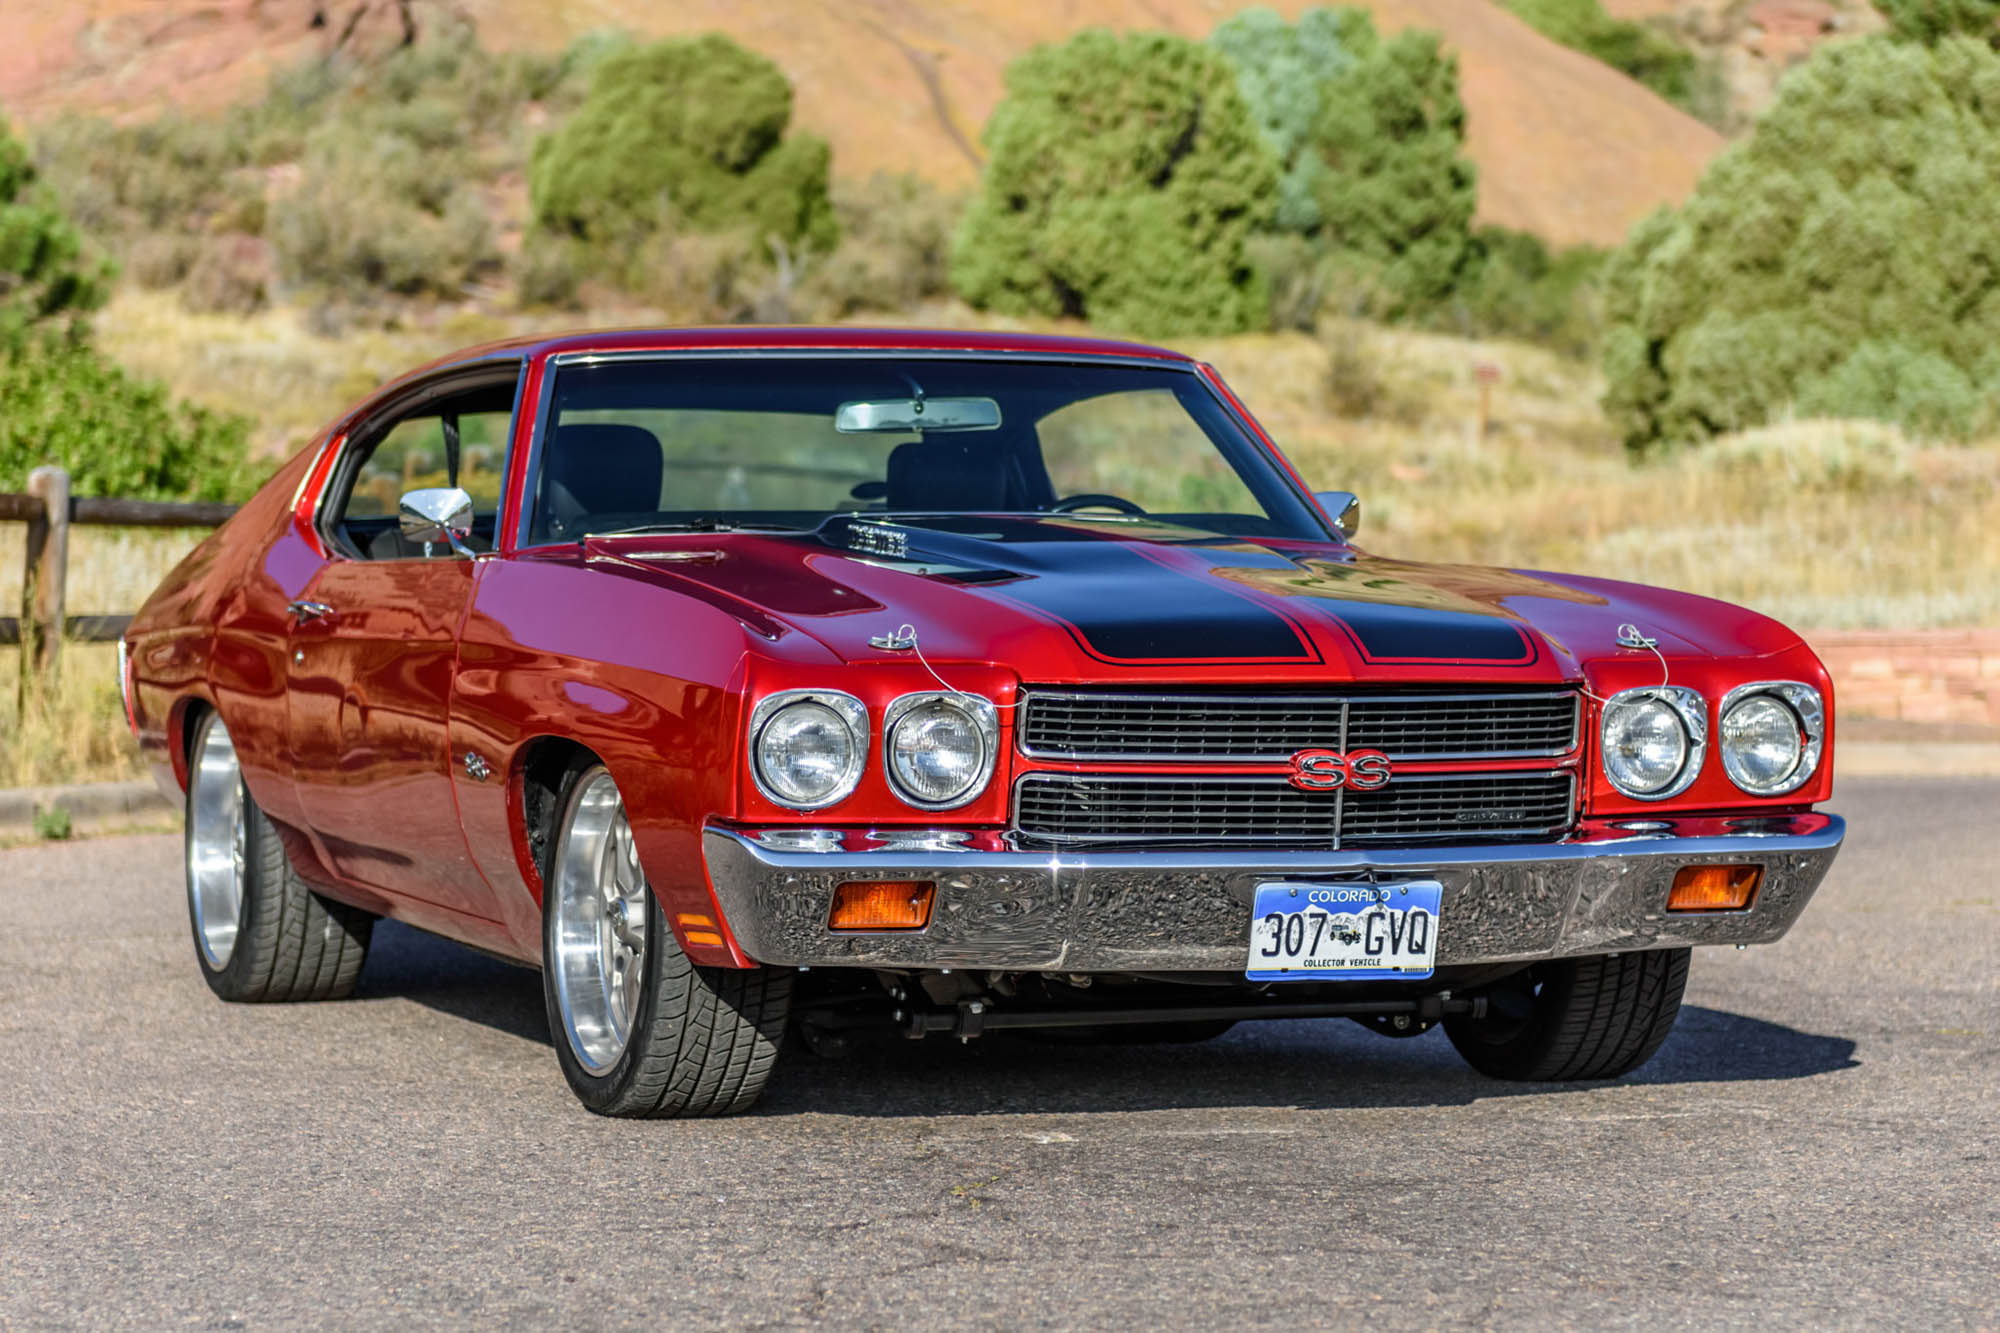 1970 Chevelle with a supercharged LSA V8